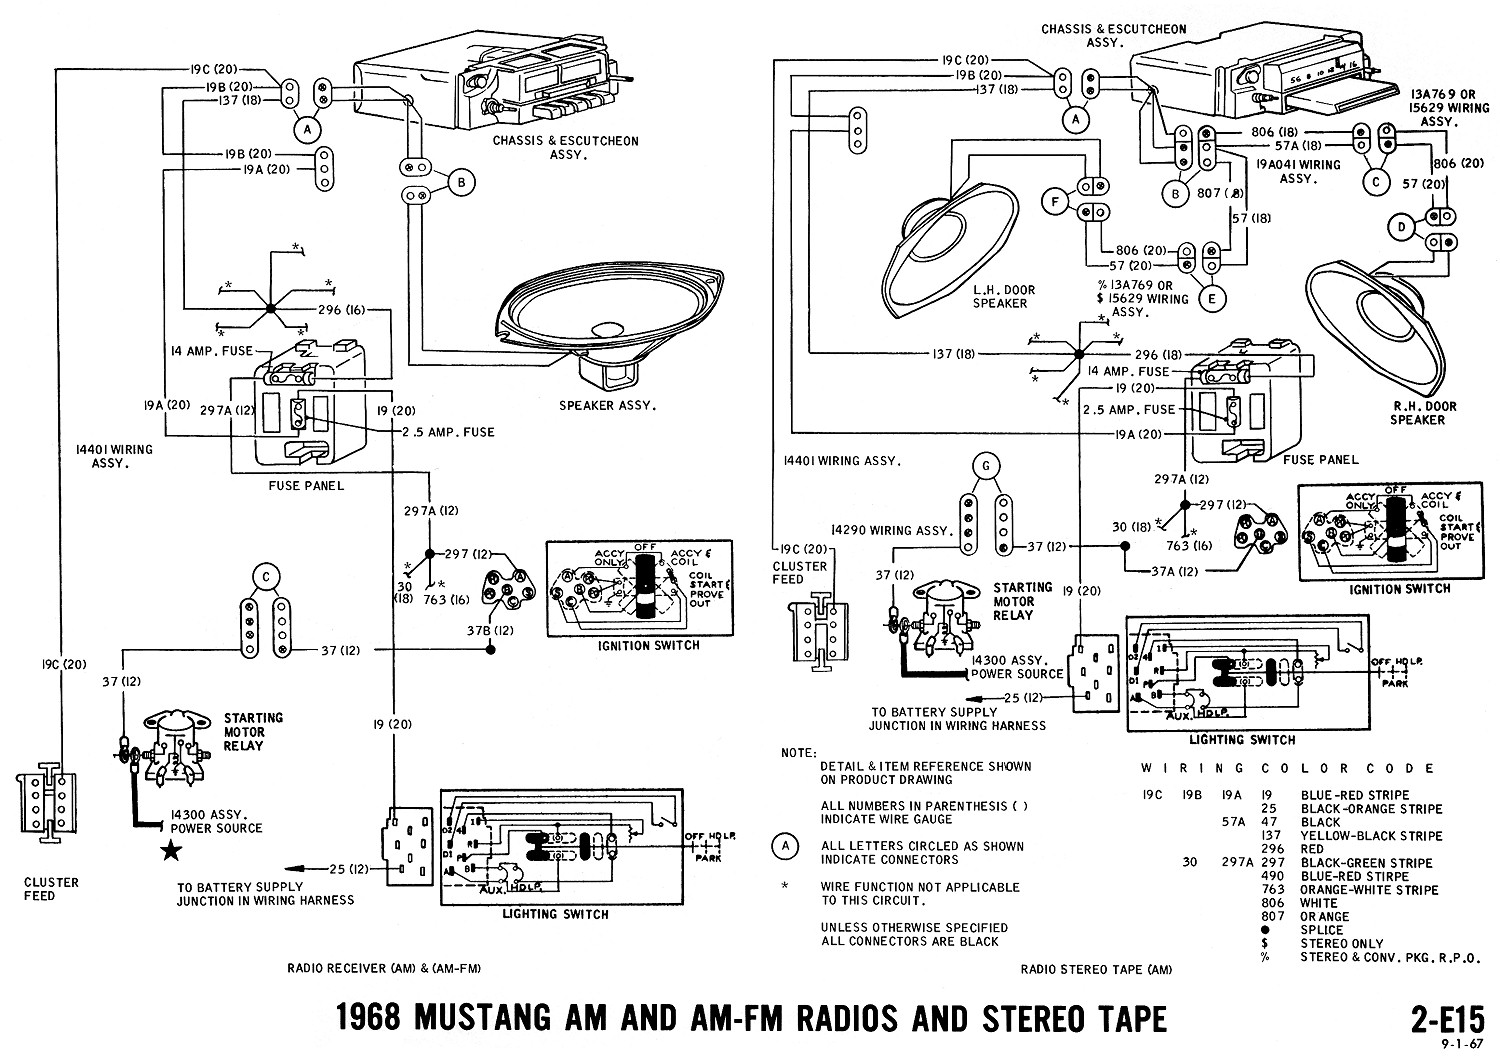 1968 Mustang Wiring Diagrams on engine control module power relay